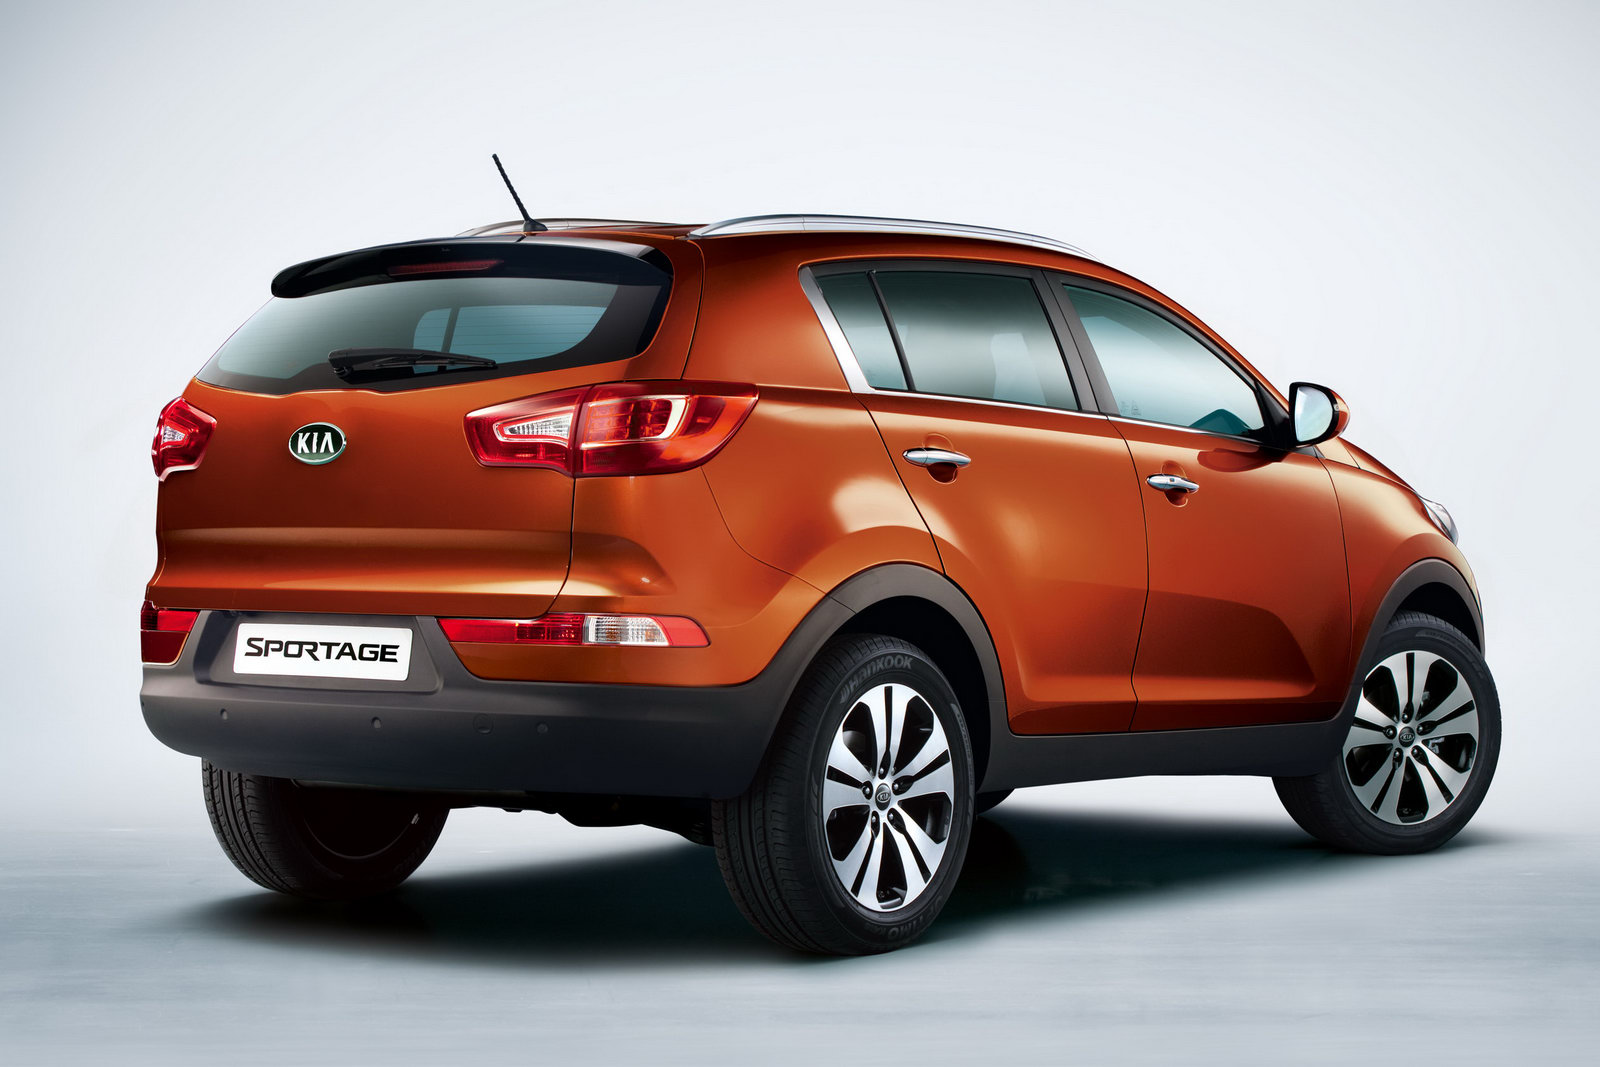 The 2011 Kia Sportage Has Been Revealed Wallpapers HD free